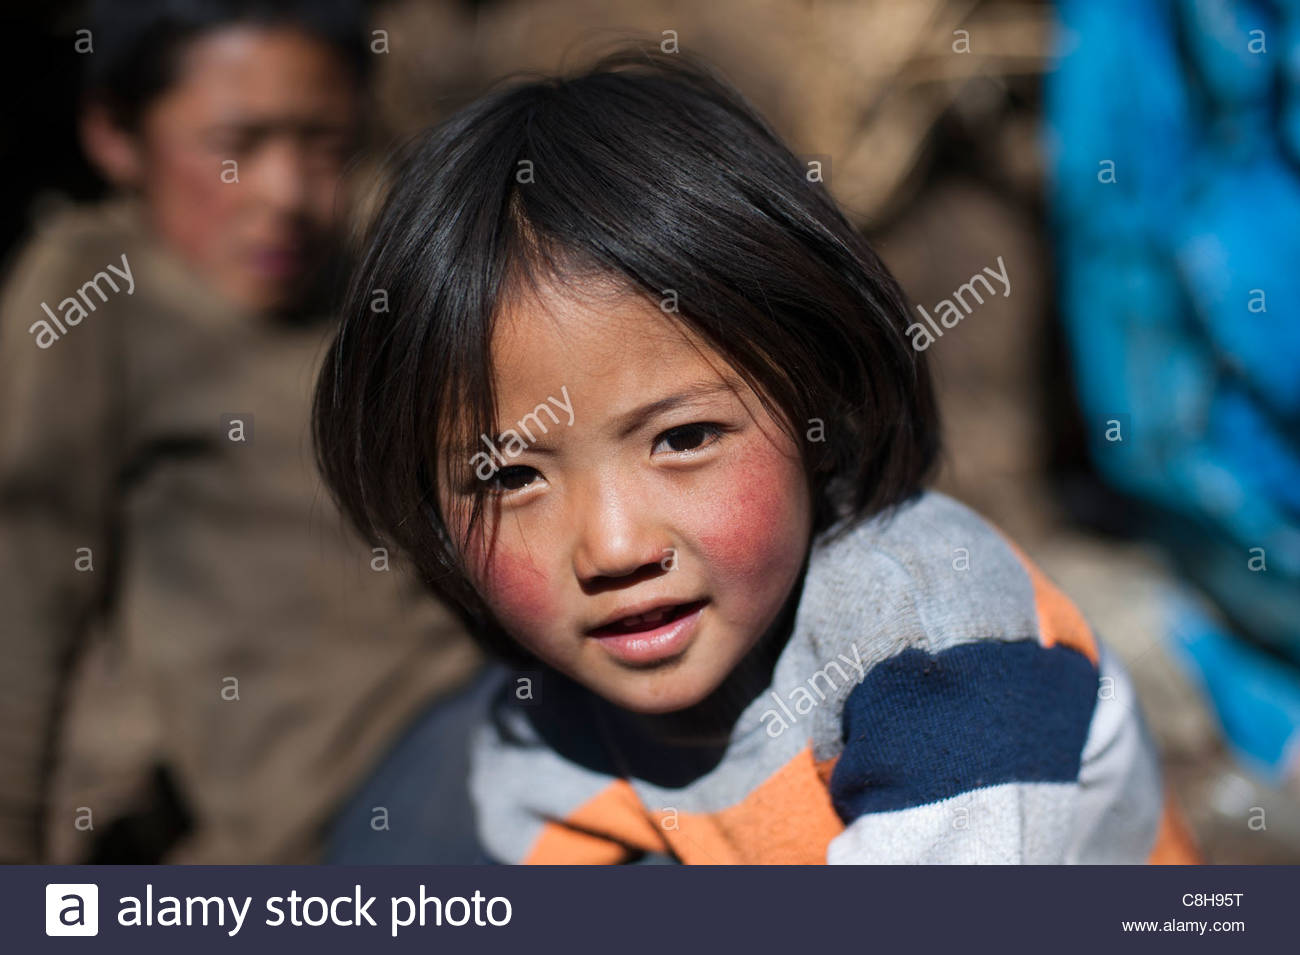 A little girl smile for the camera on the Laya-Gasa trek in Bhutan. - Stock Image